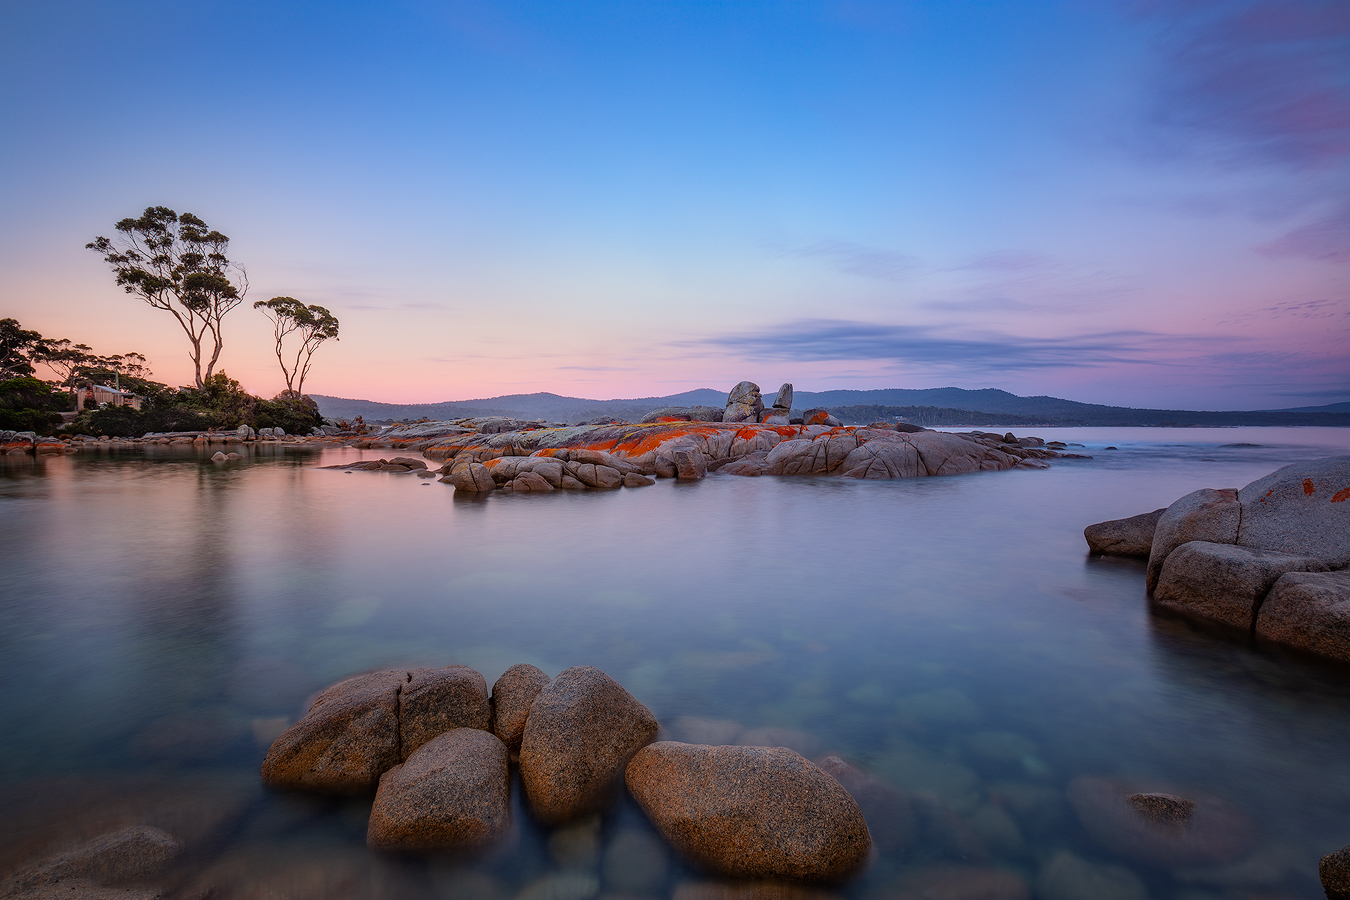 Tasmania Landscape Photography Tour - Binalong Bay Pastel Morning Sunrise | Holiday with We Are Raw Photography Tours